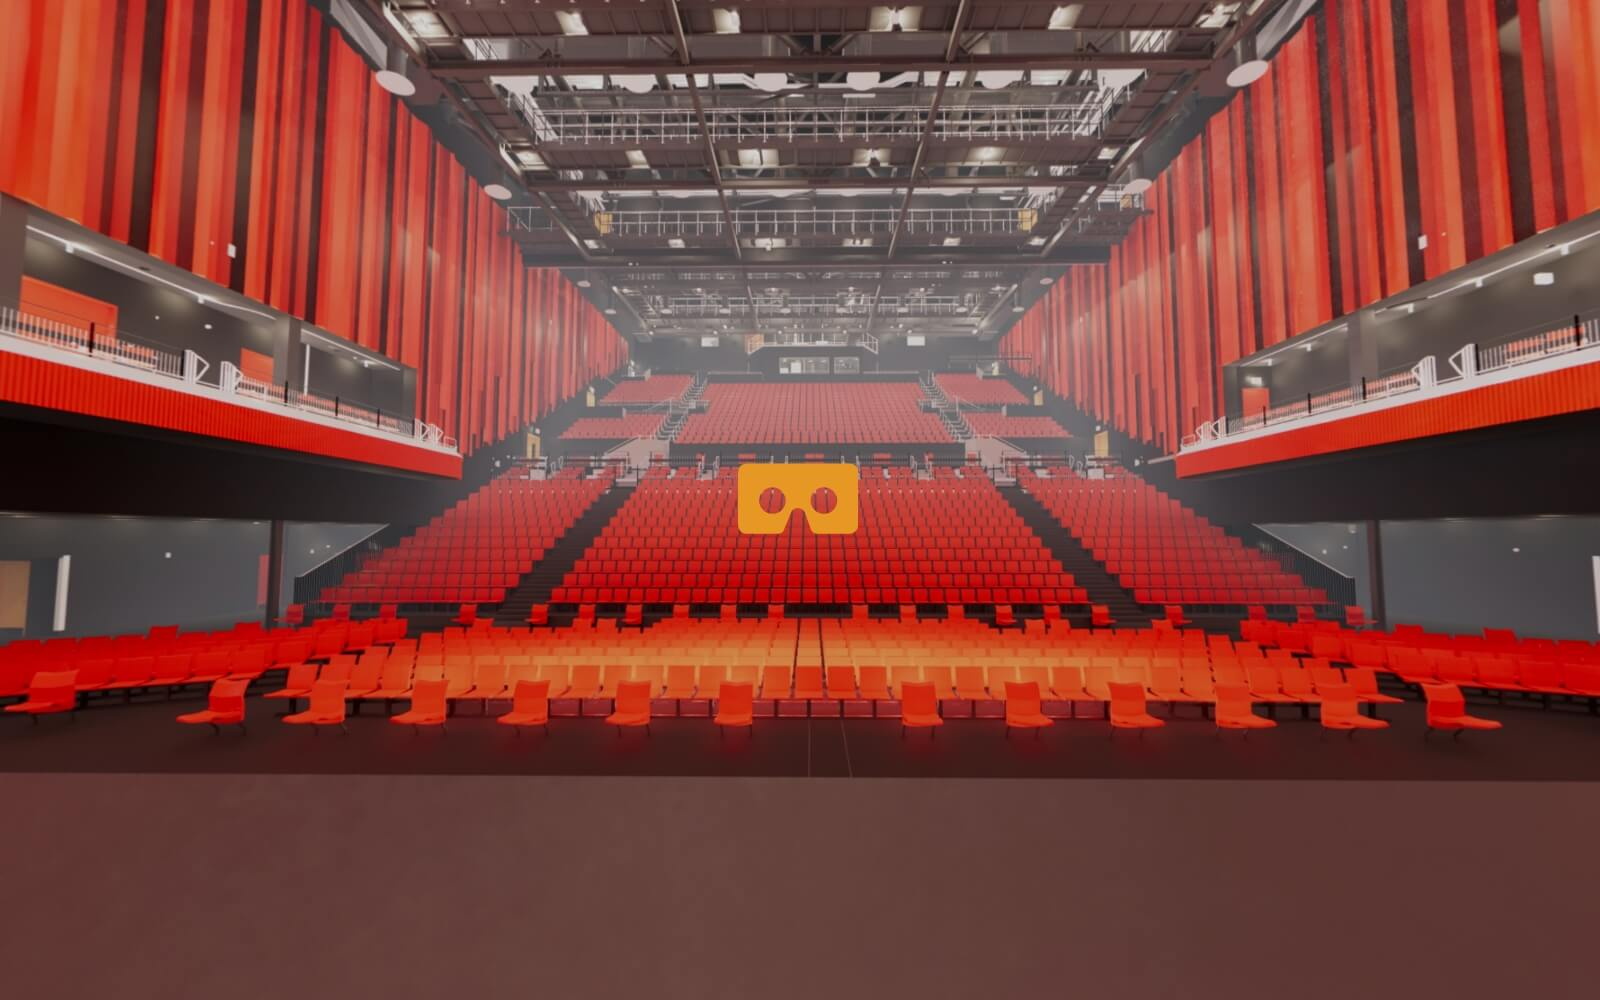 360 view from stage